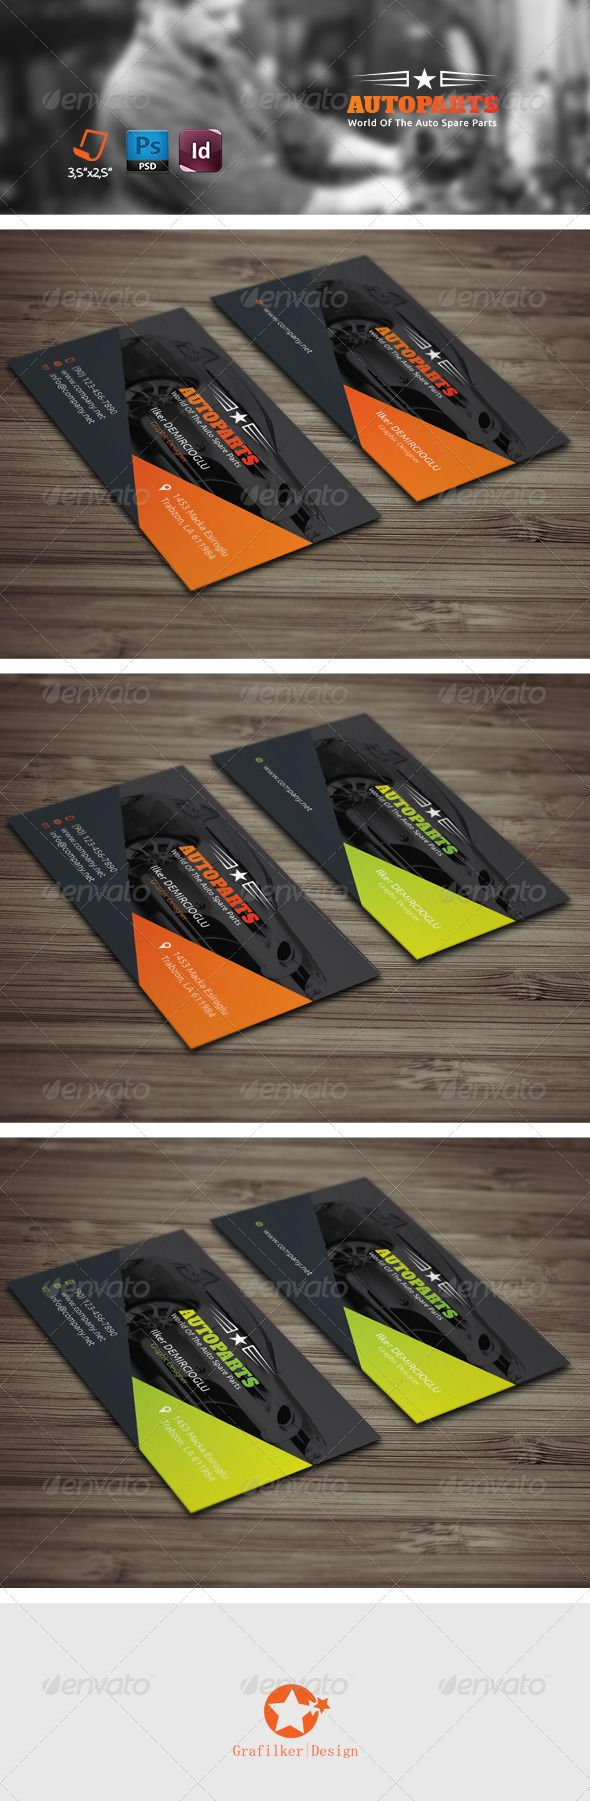 Auto Services Business Card Templates | Auto service, Card templates ...